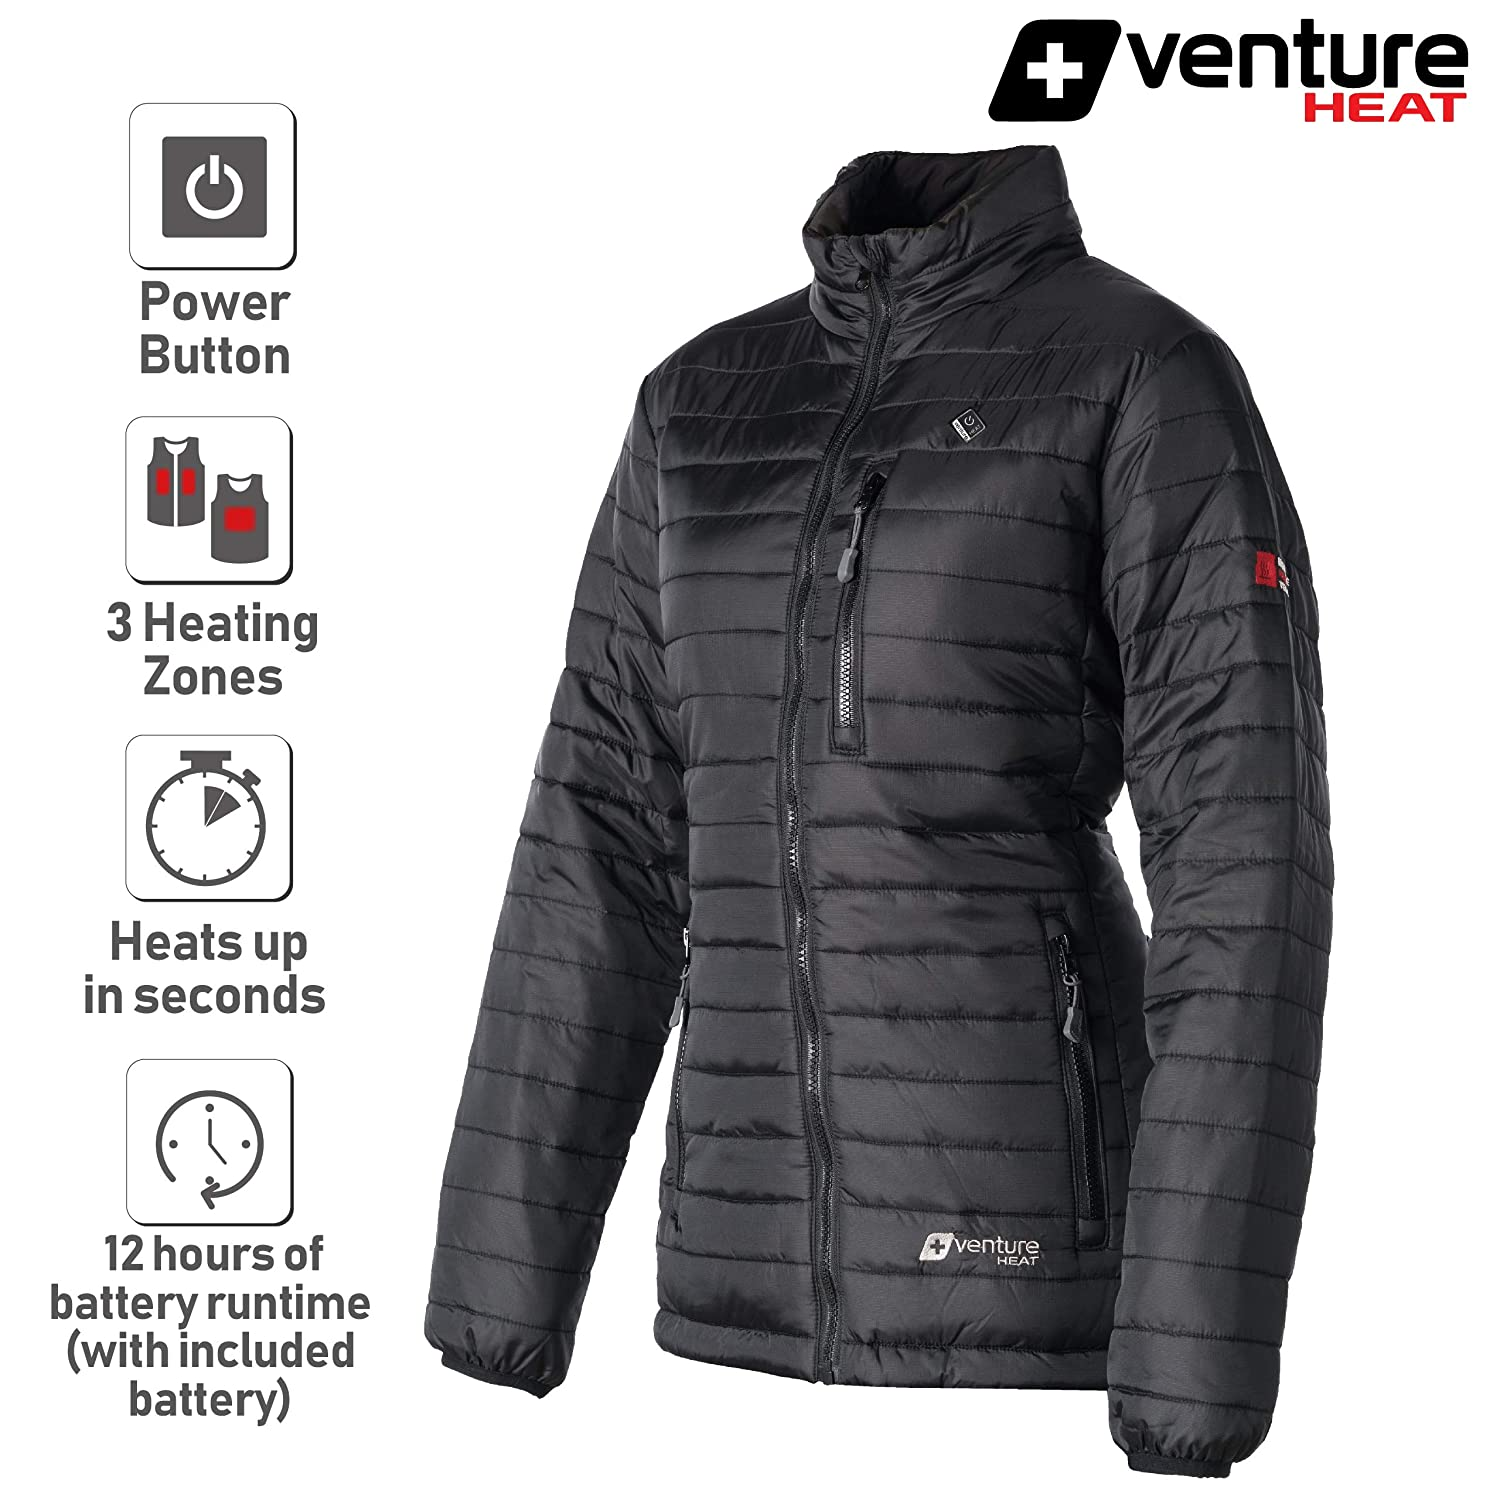 2293b52c2 Venture Heat Women's Heated Jacket with Battery 12 Hour - The Traverse  Packable Puffer Heated Jacket for Women